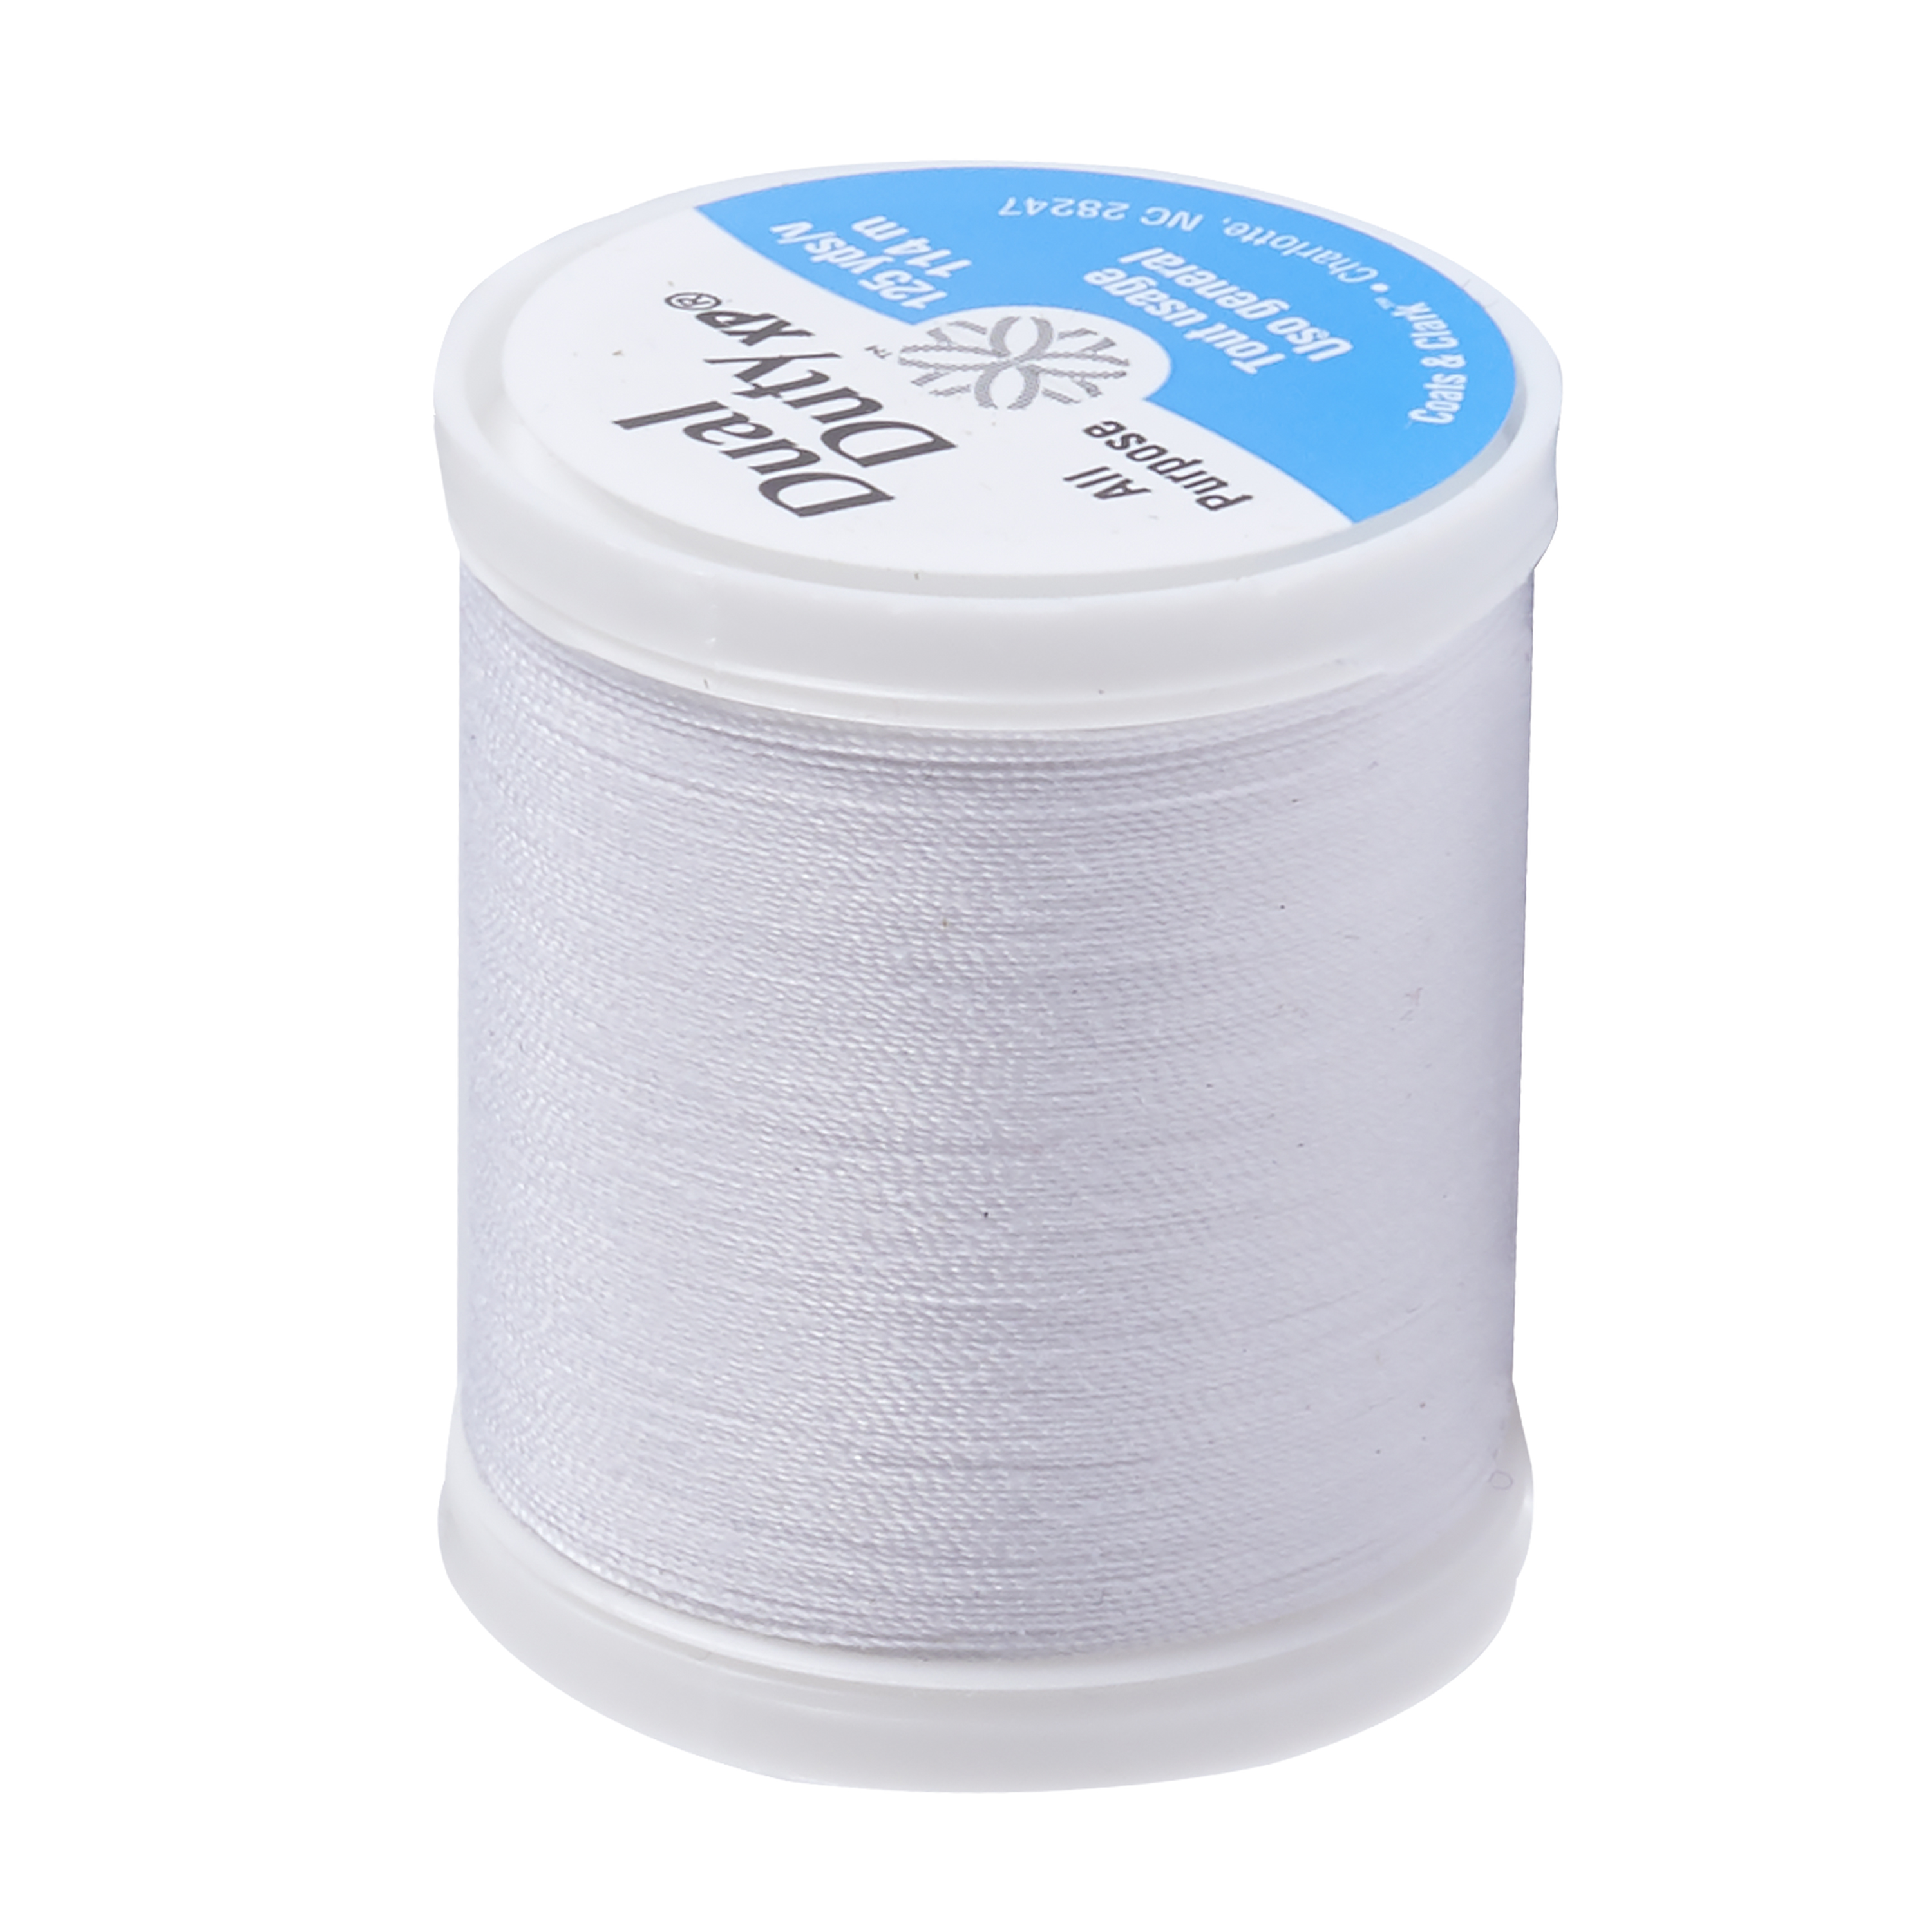 Dual Duty XP All Purpose Thread 125 YD